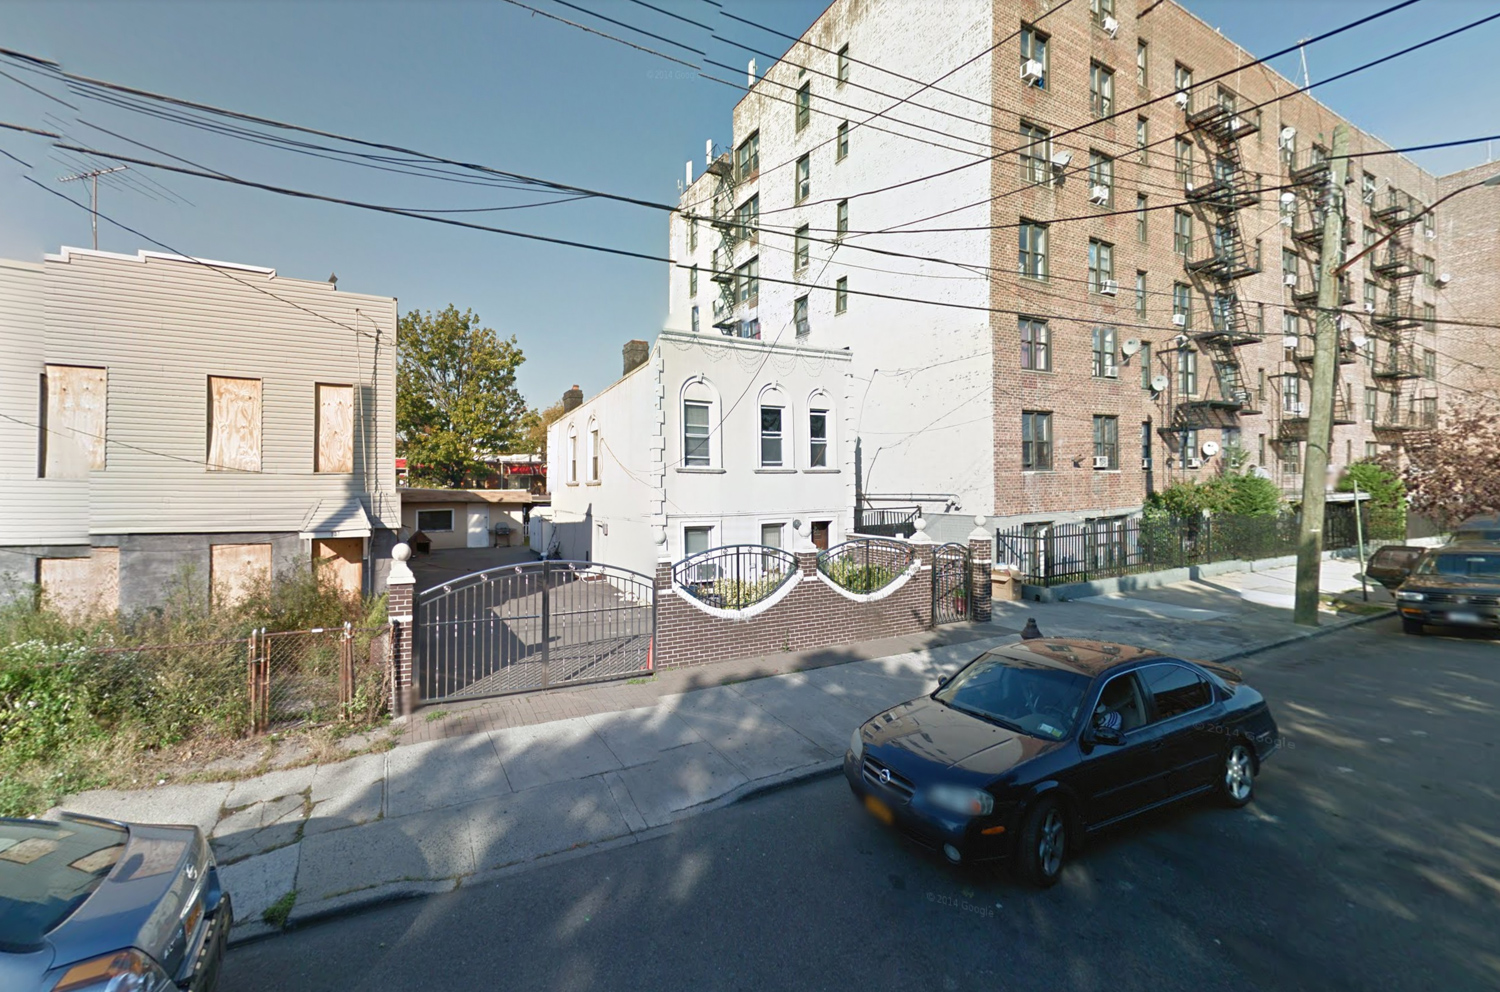 739, 741 Fenimore Street, via Google Maps